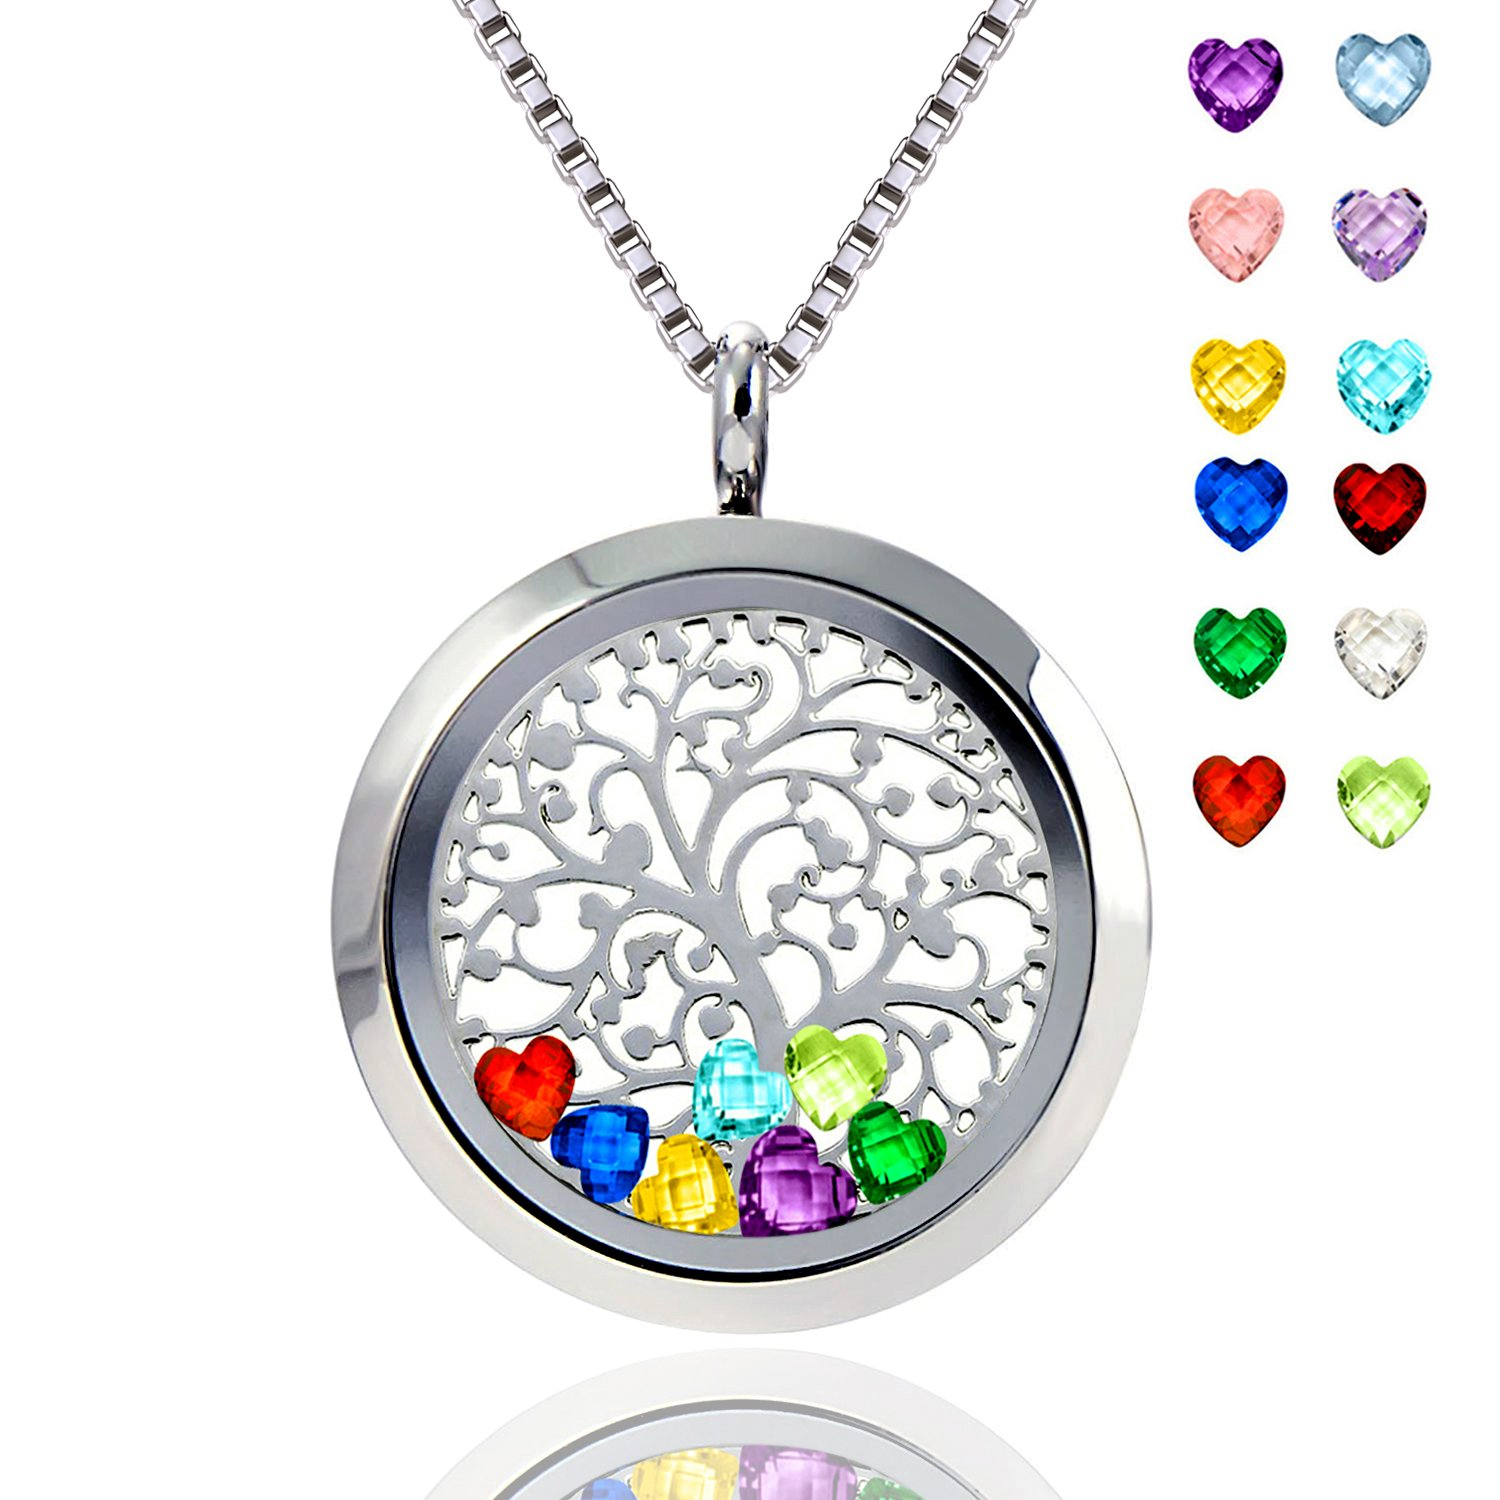 Ronglai Jewelry Floating Locket Pendant Necklace Heart Crystal Family Tree of Life Necklace All Birthstone Charms Include